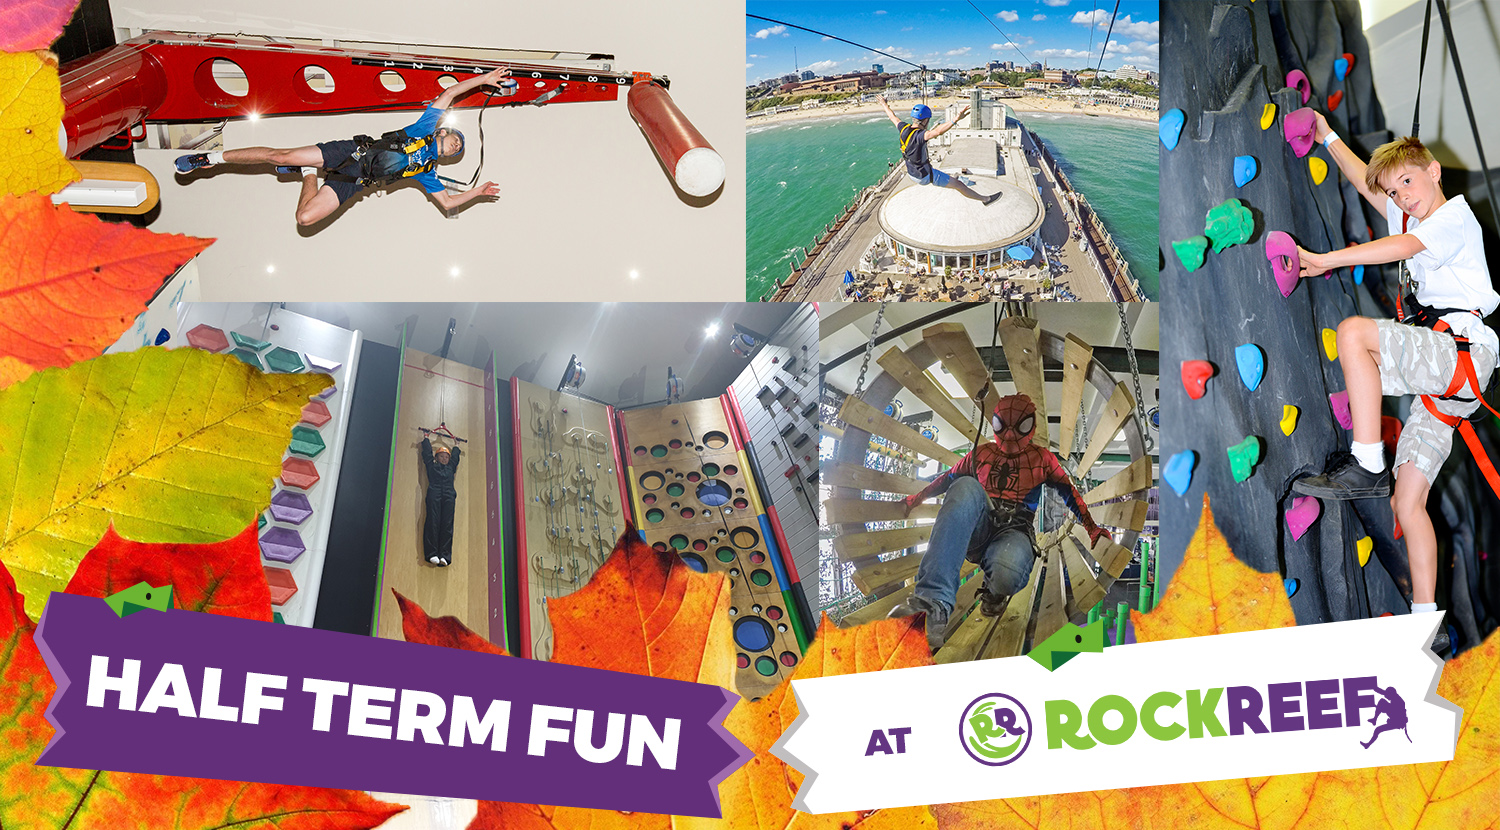 Half Term Fun And Adventure At RockReef And PierZip On Bournemouth Pier!